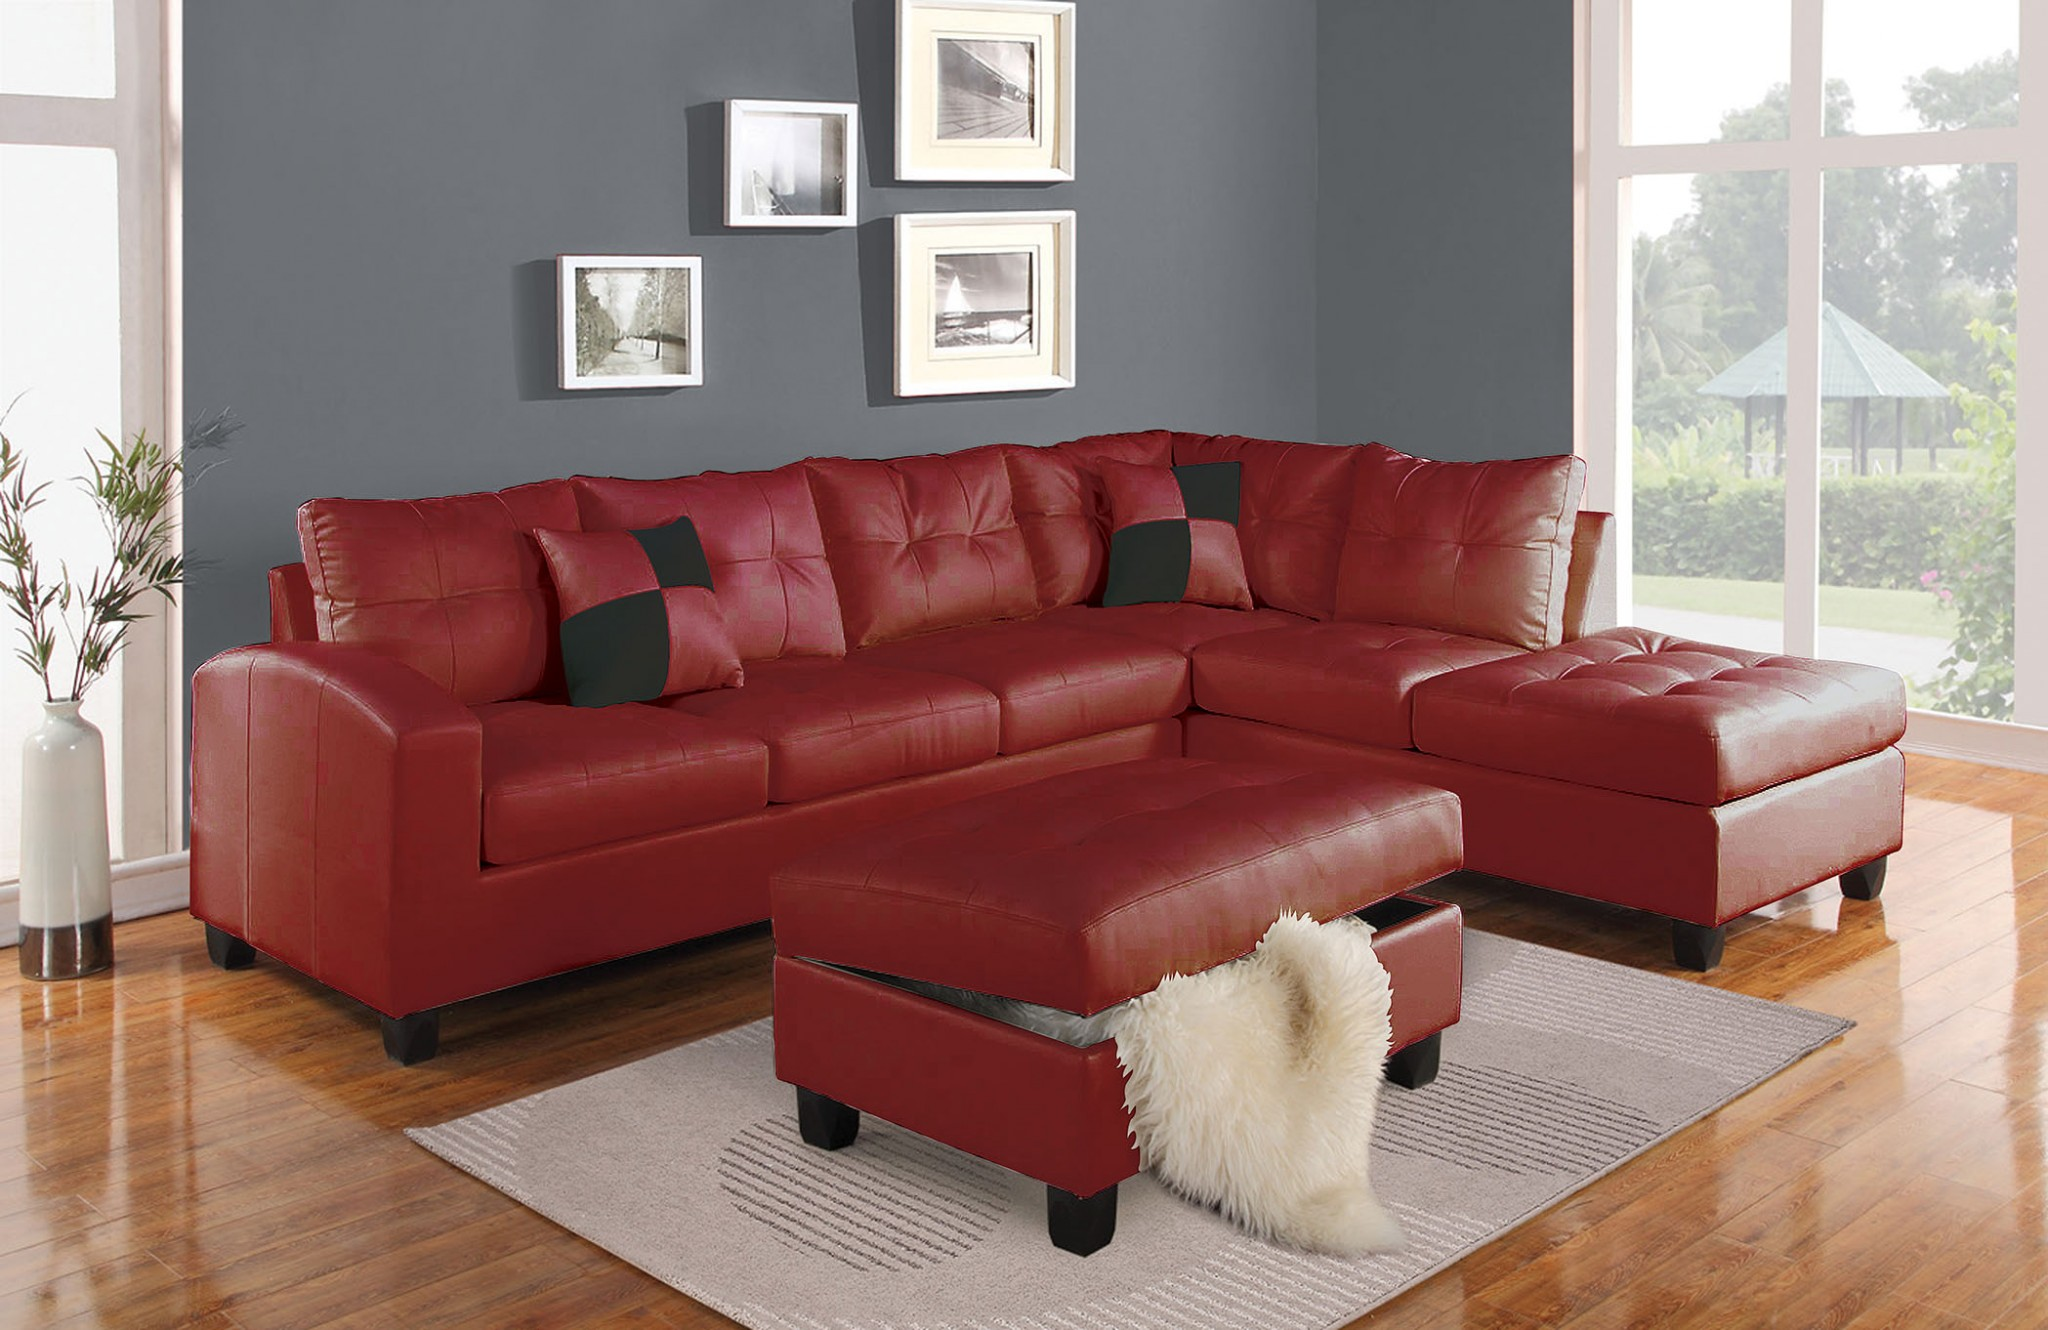 """78"""" X 33"""" X 34"""" Red Bonded Leather Reversible Sectional Sofa With 2 Pillows"""